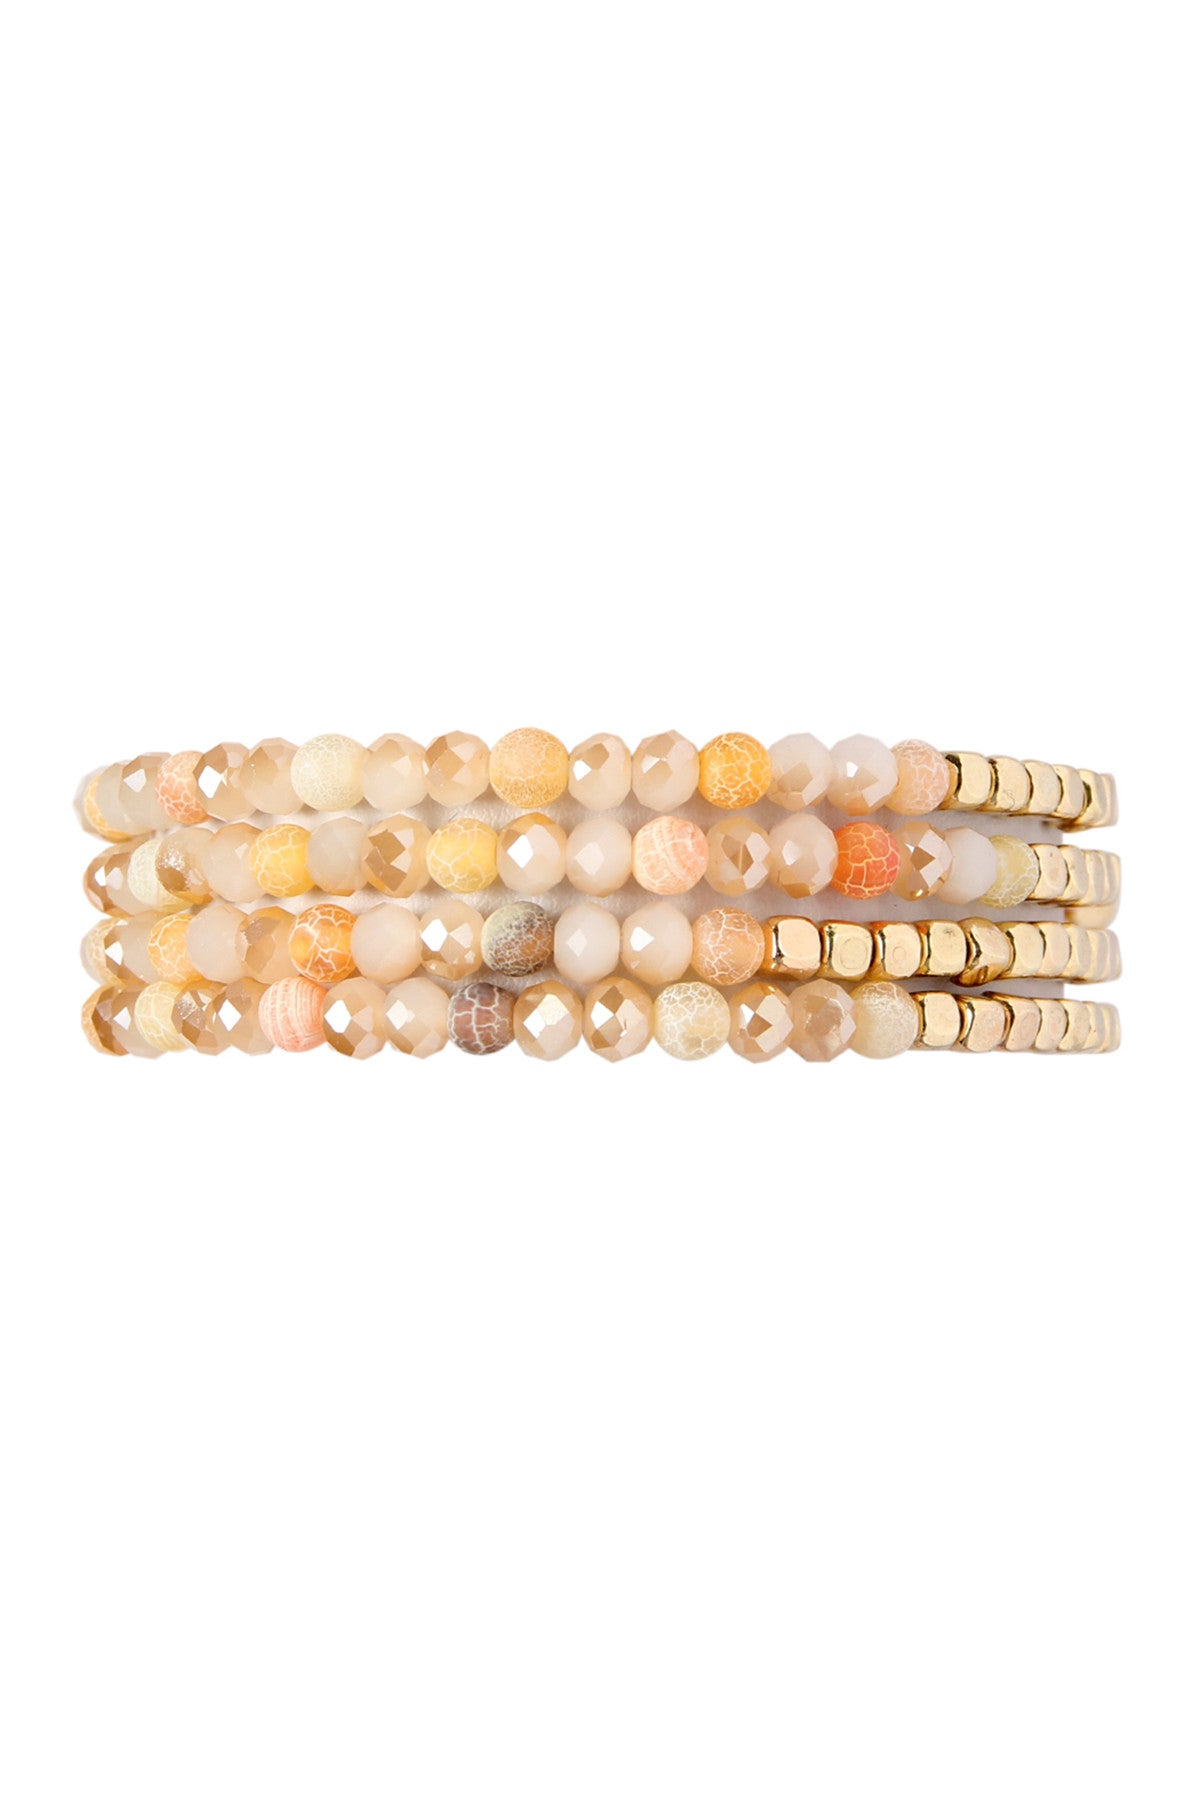 Beaded Stretch Bracelets in Peach - Enclothe Boutique